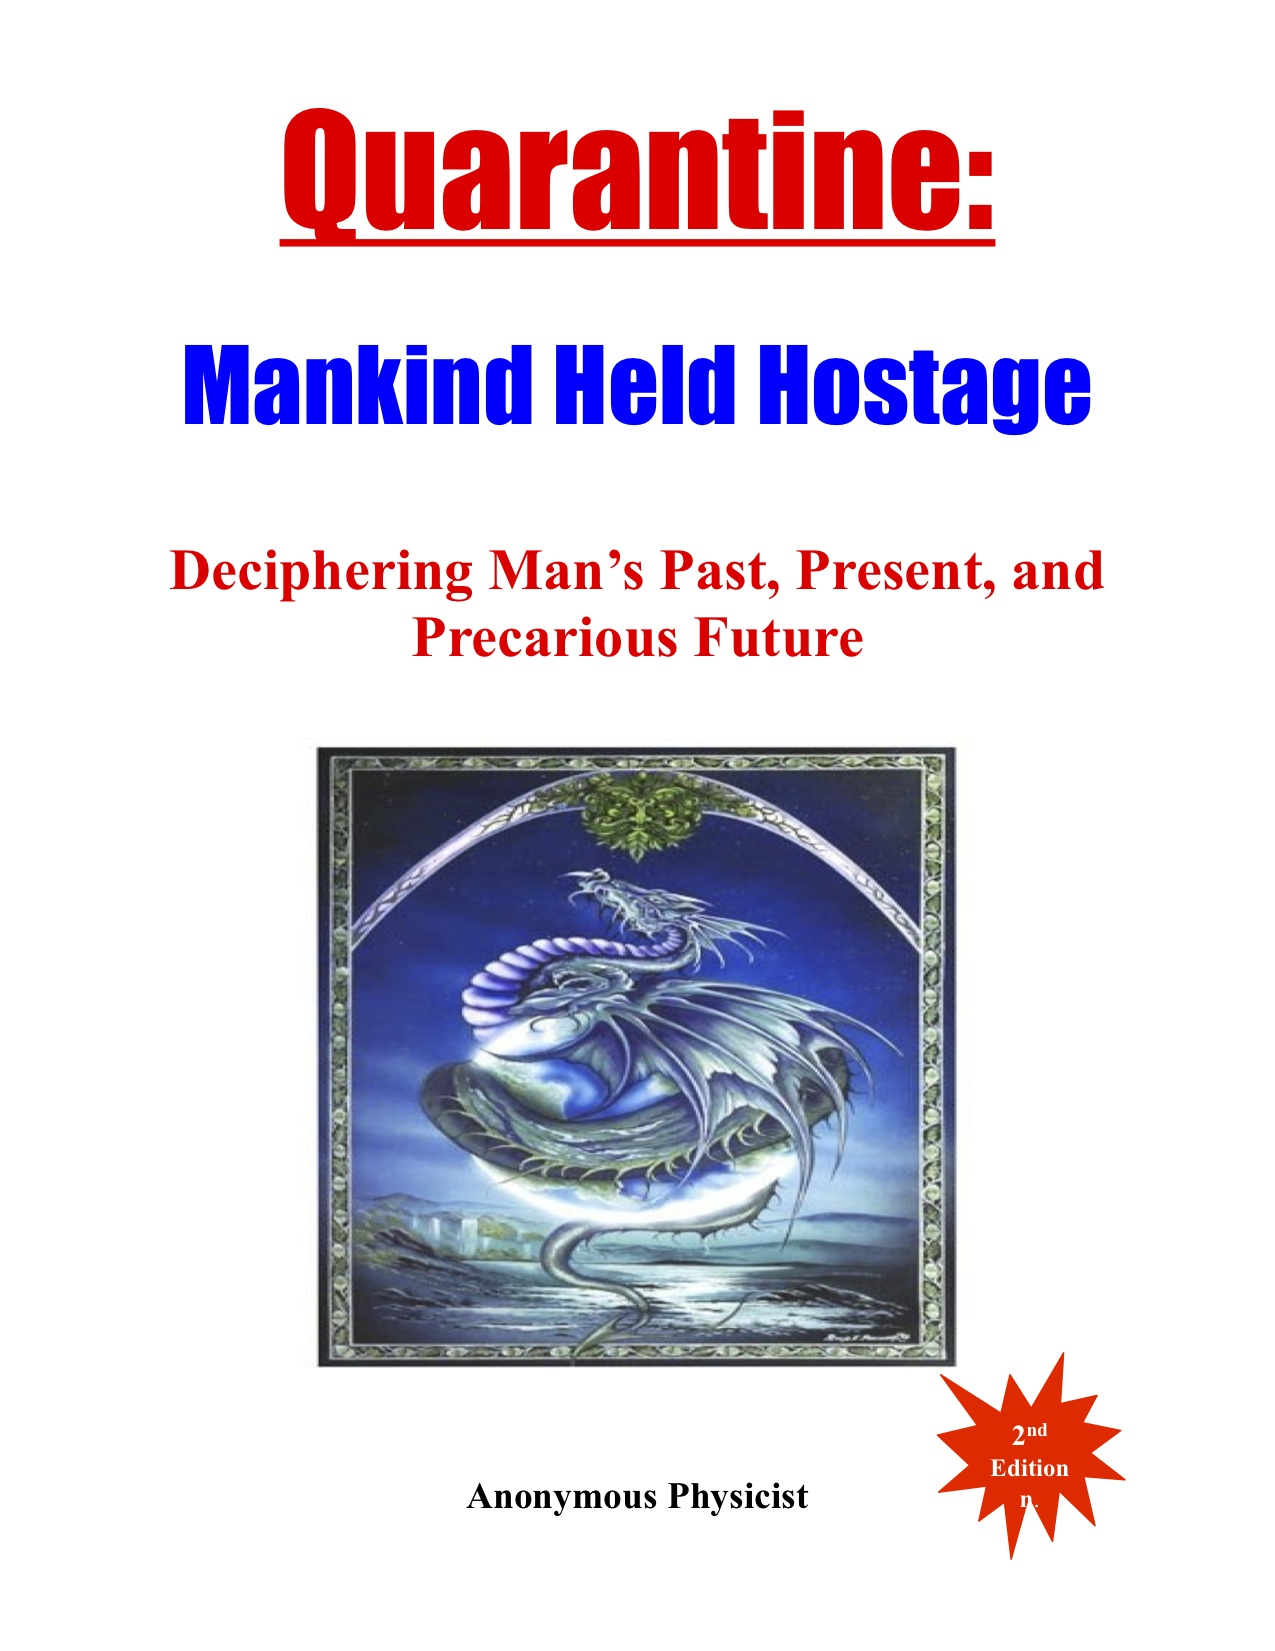 Quarantine: Mankind Held Hostage Deciphering Man's Past, Present, and Precarious Future, 2nd Editionl